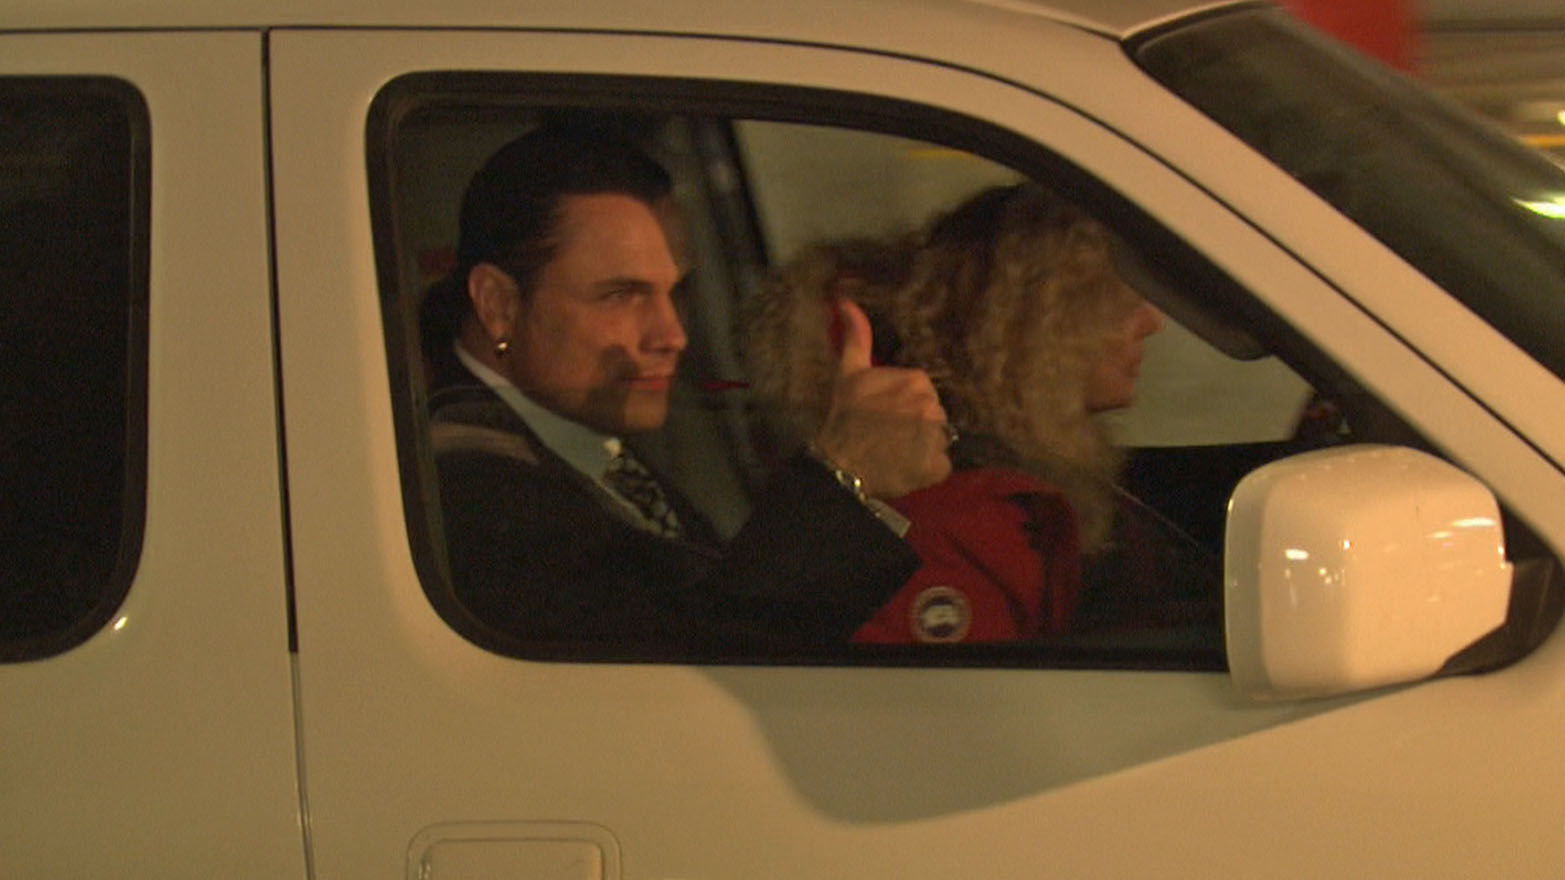 Suspended Senator Patrick Brazeau gives thumps up after trial Monday